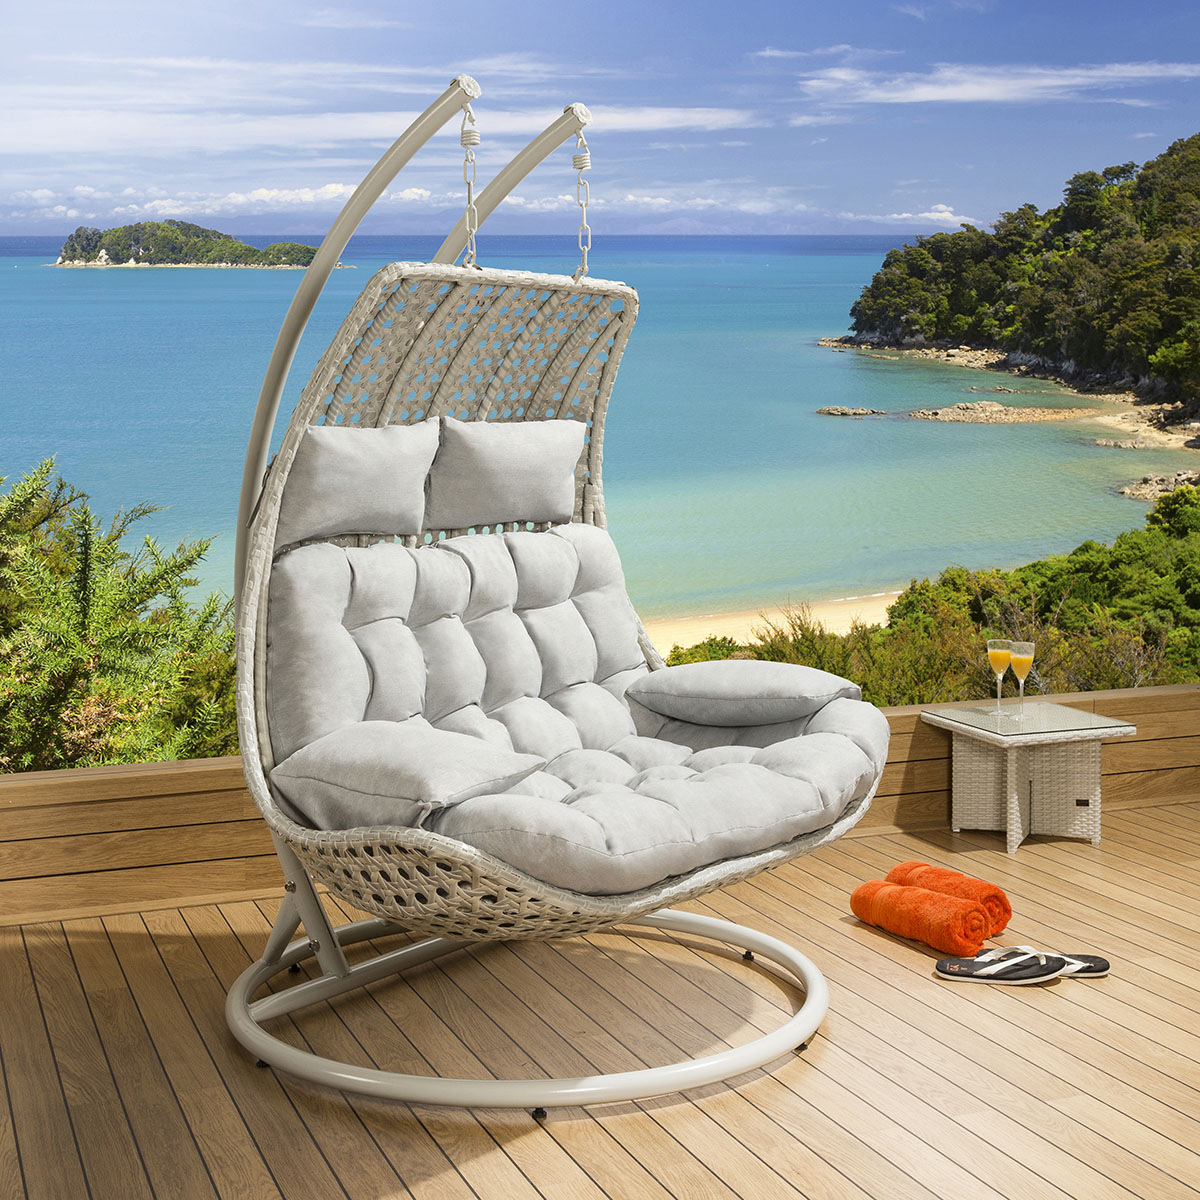 patio hanging chair kitchen table with 8 chairs outdoor rattan 2 person garden sunbed